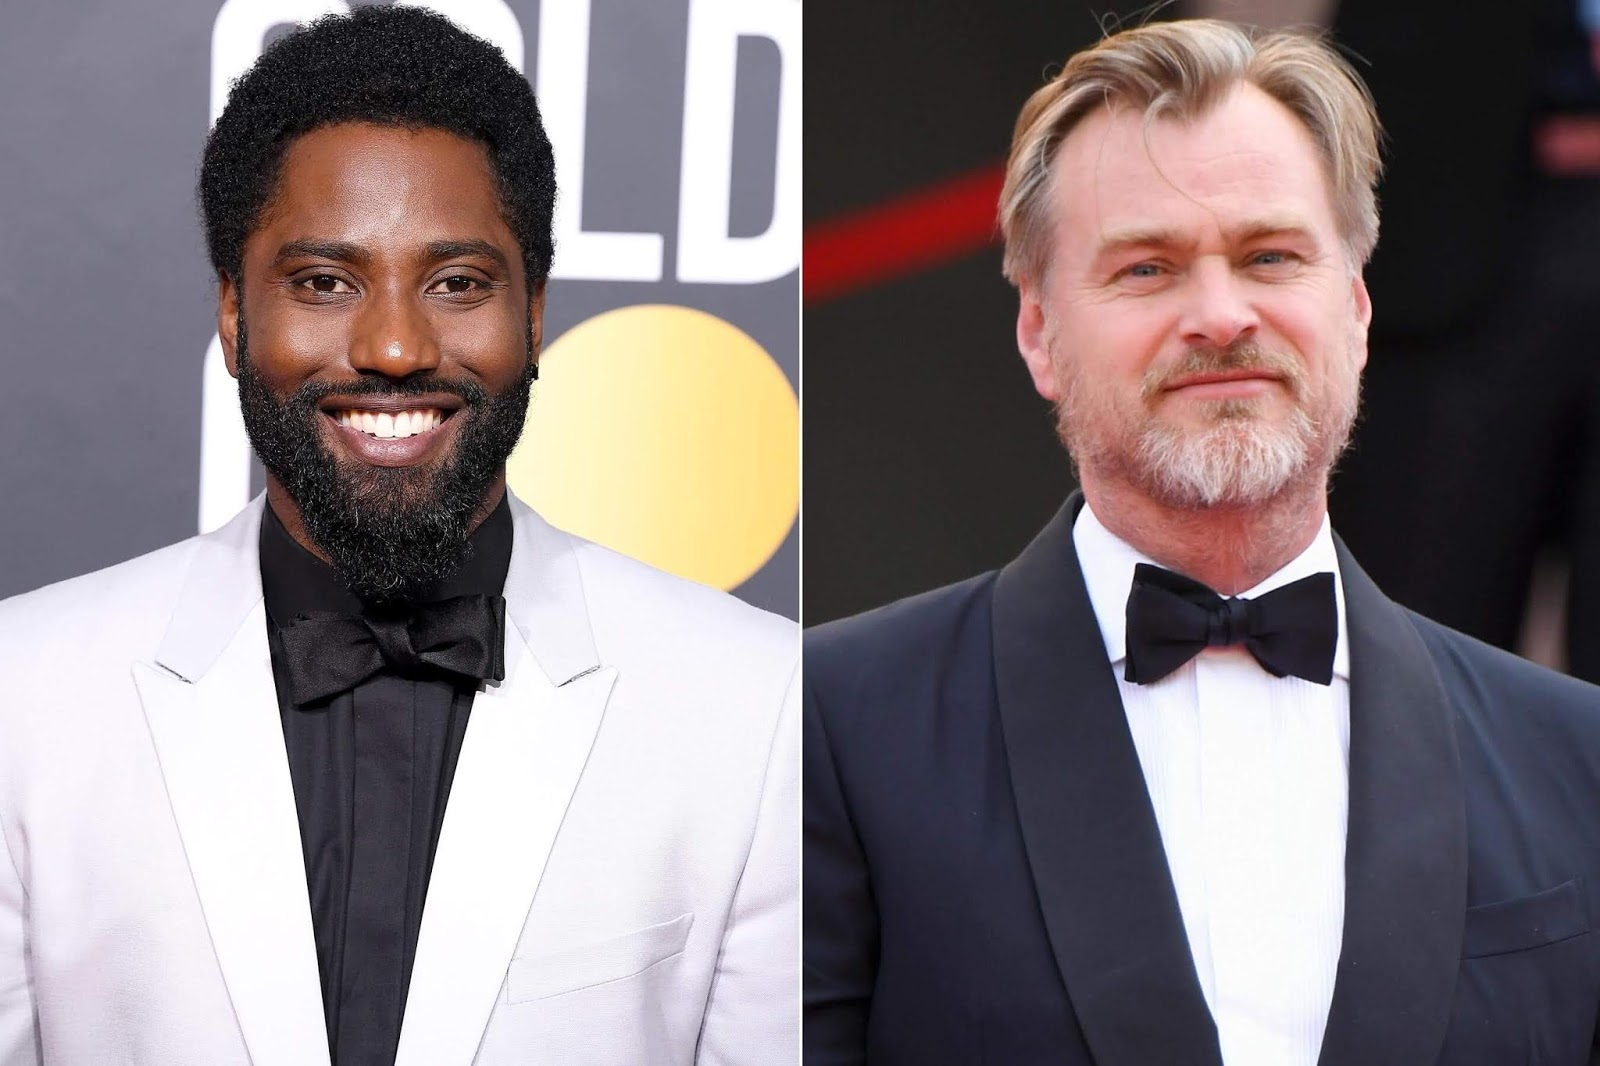 Christopher Nolan casts John David Washington to lead his next movie